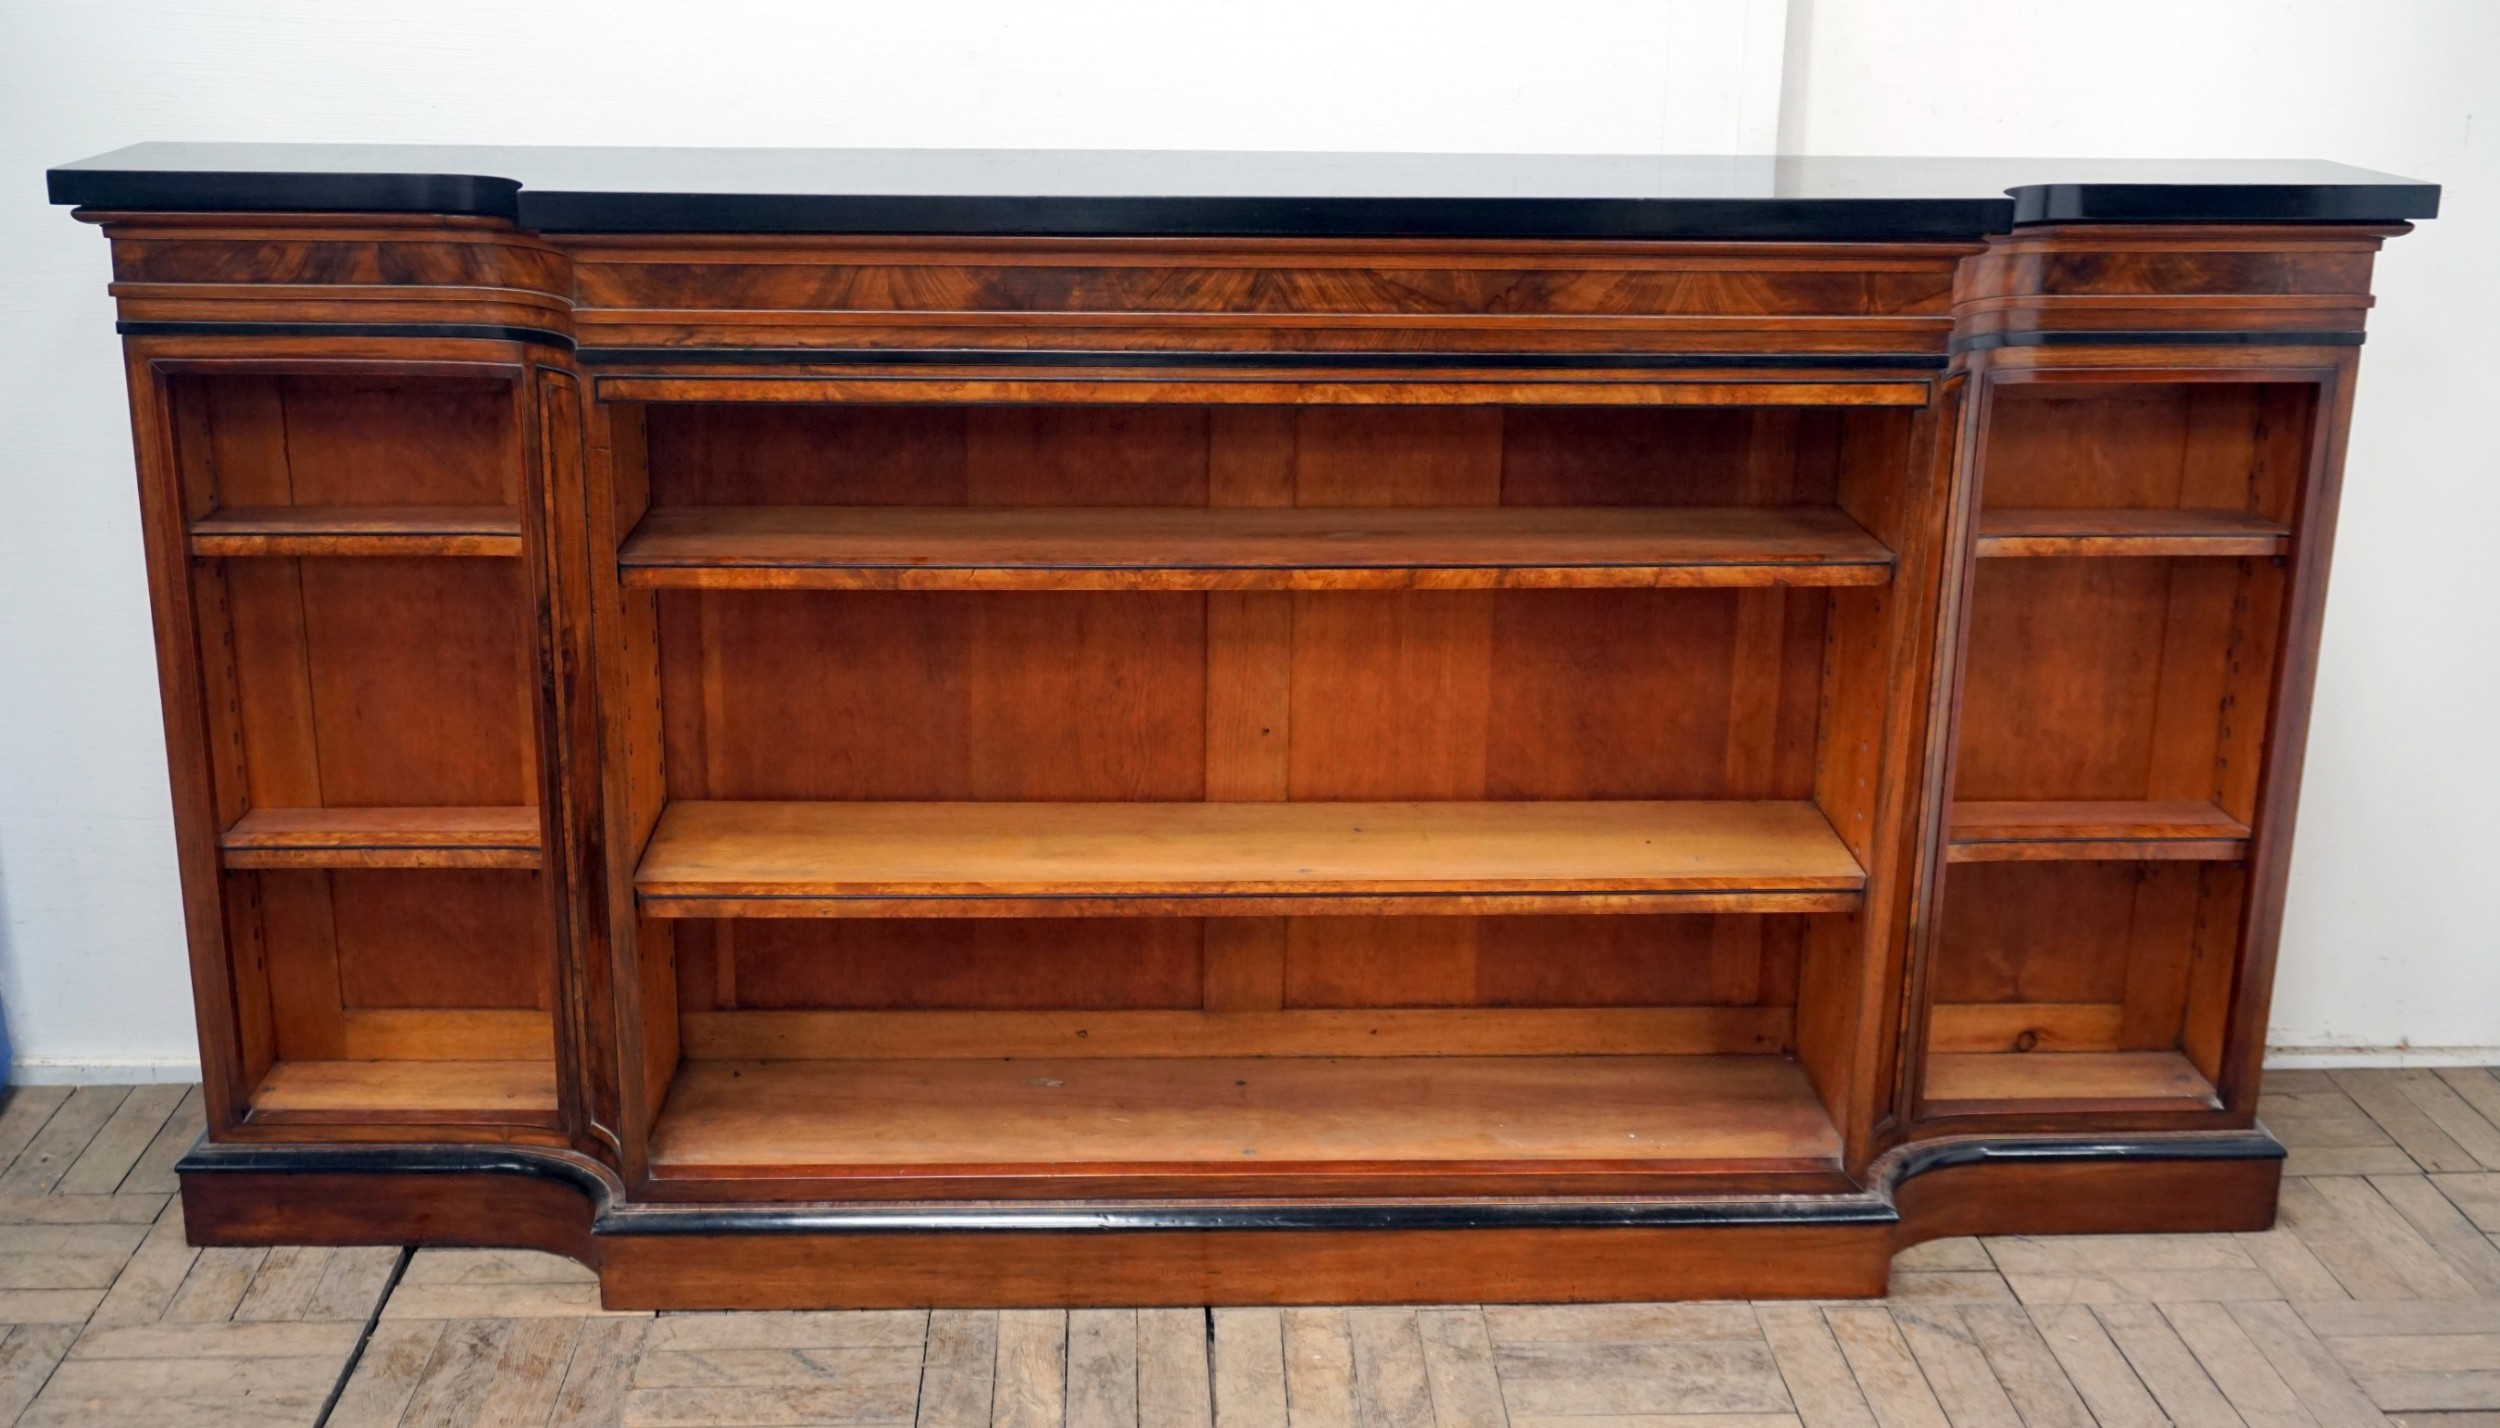 a magnificent narrow victorian walnut and ebonised open shelf bookcase